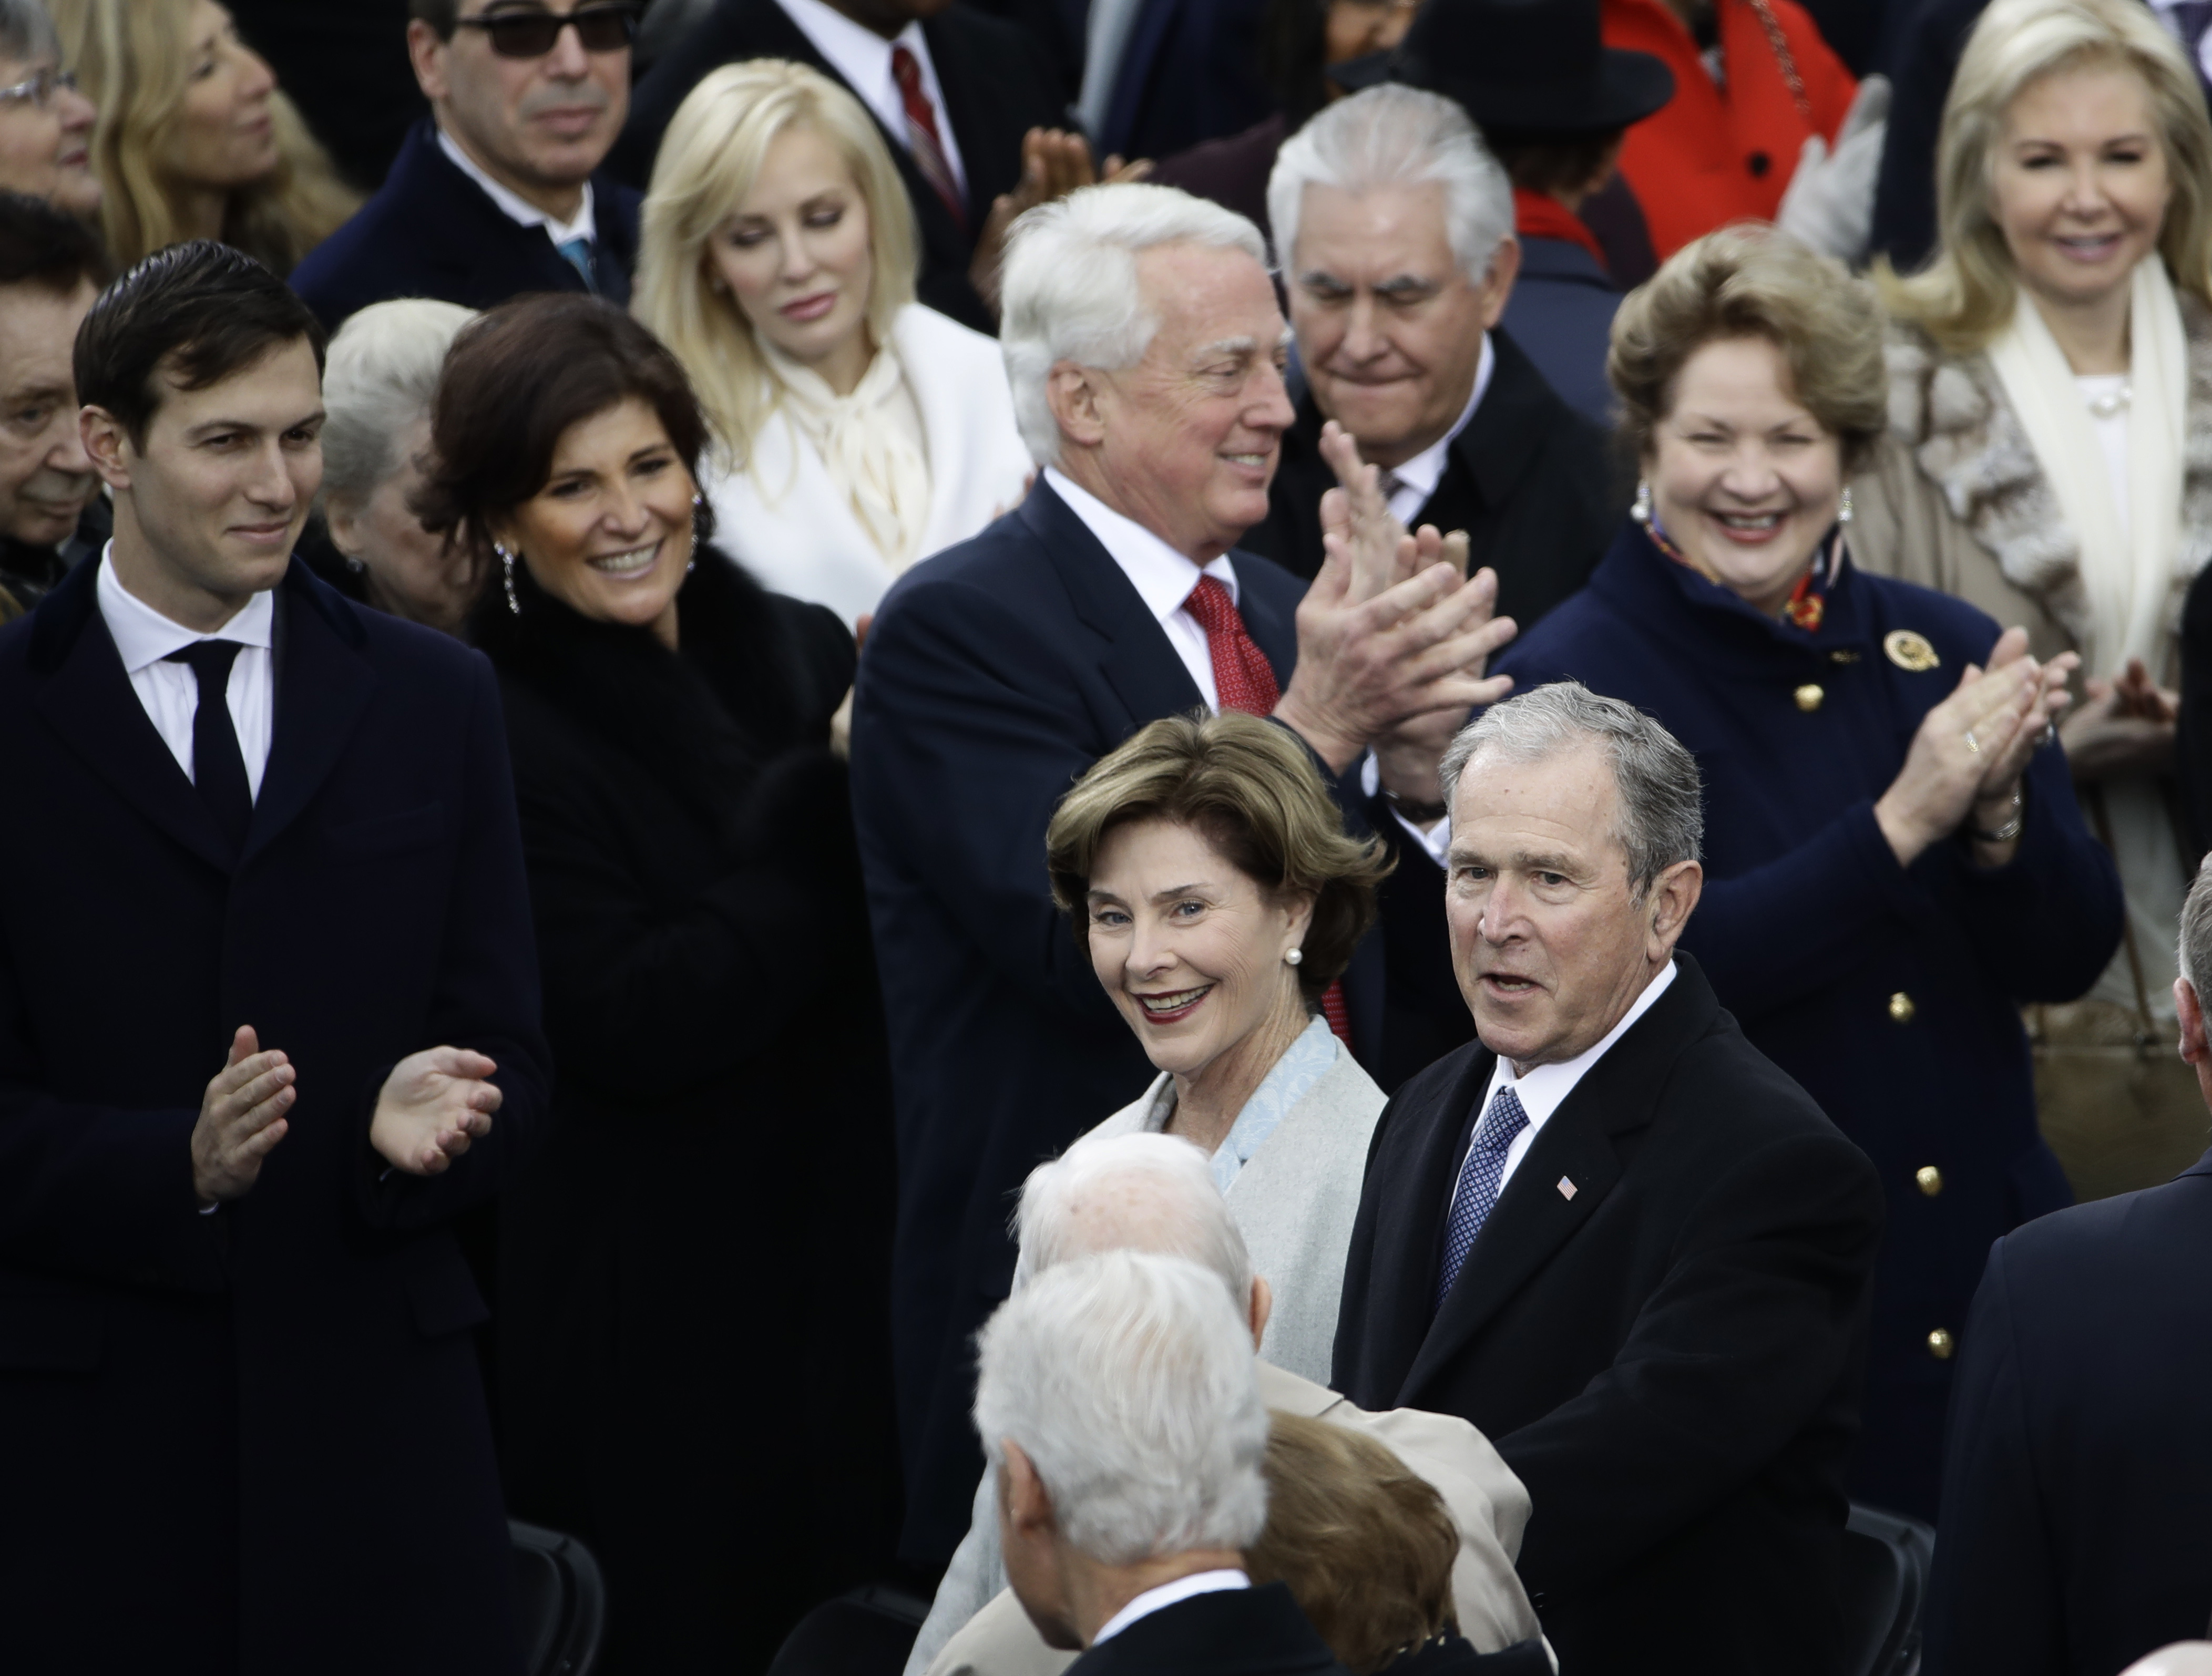 <div class='meta'><div class='origin-logo' data-origin='none'></div><span class='caption-text' data-credit='AP Photo/Matt Rourke'>Former President George W. Bush and his wife Laura arrive for the 58th Presidential Inauguration at the U.S. Capitol in Washington, Friday, Jan. 20, 2017.</span></div>